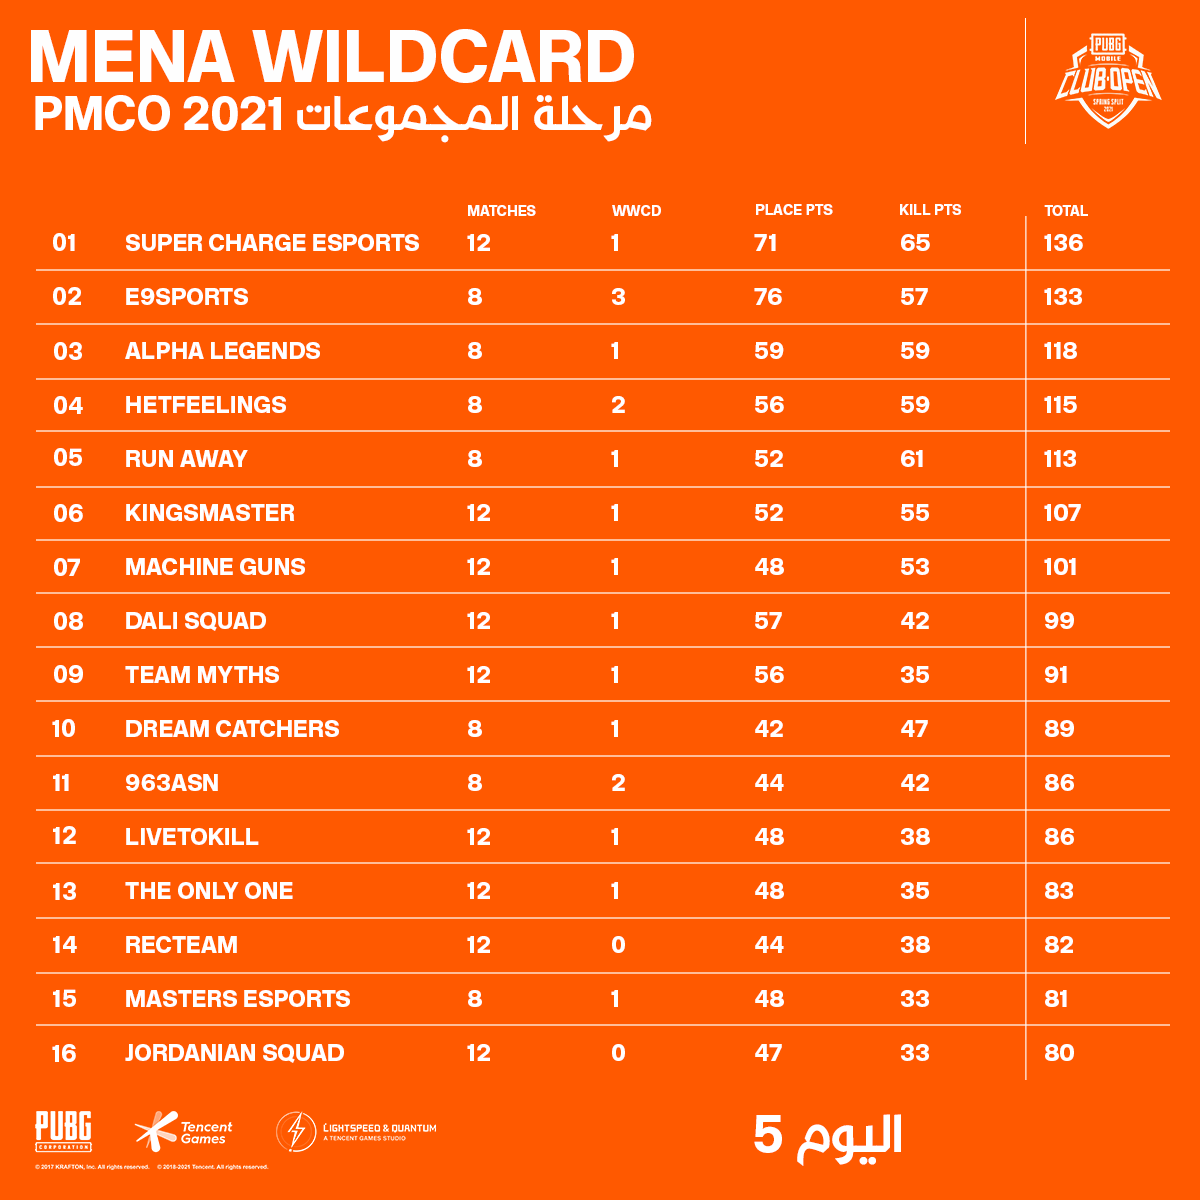 MENA Wildcard PMCO 2021 Group Stage Day 5 Standings